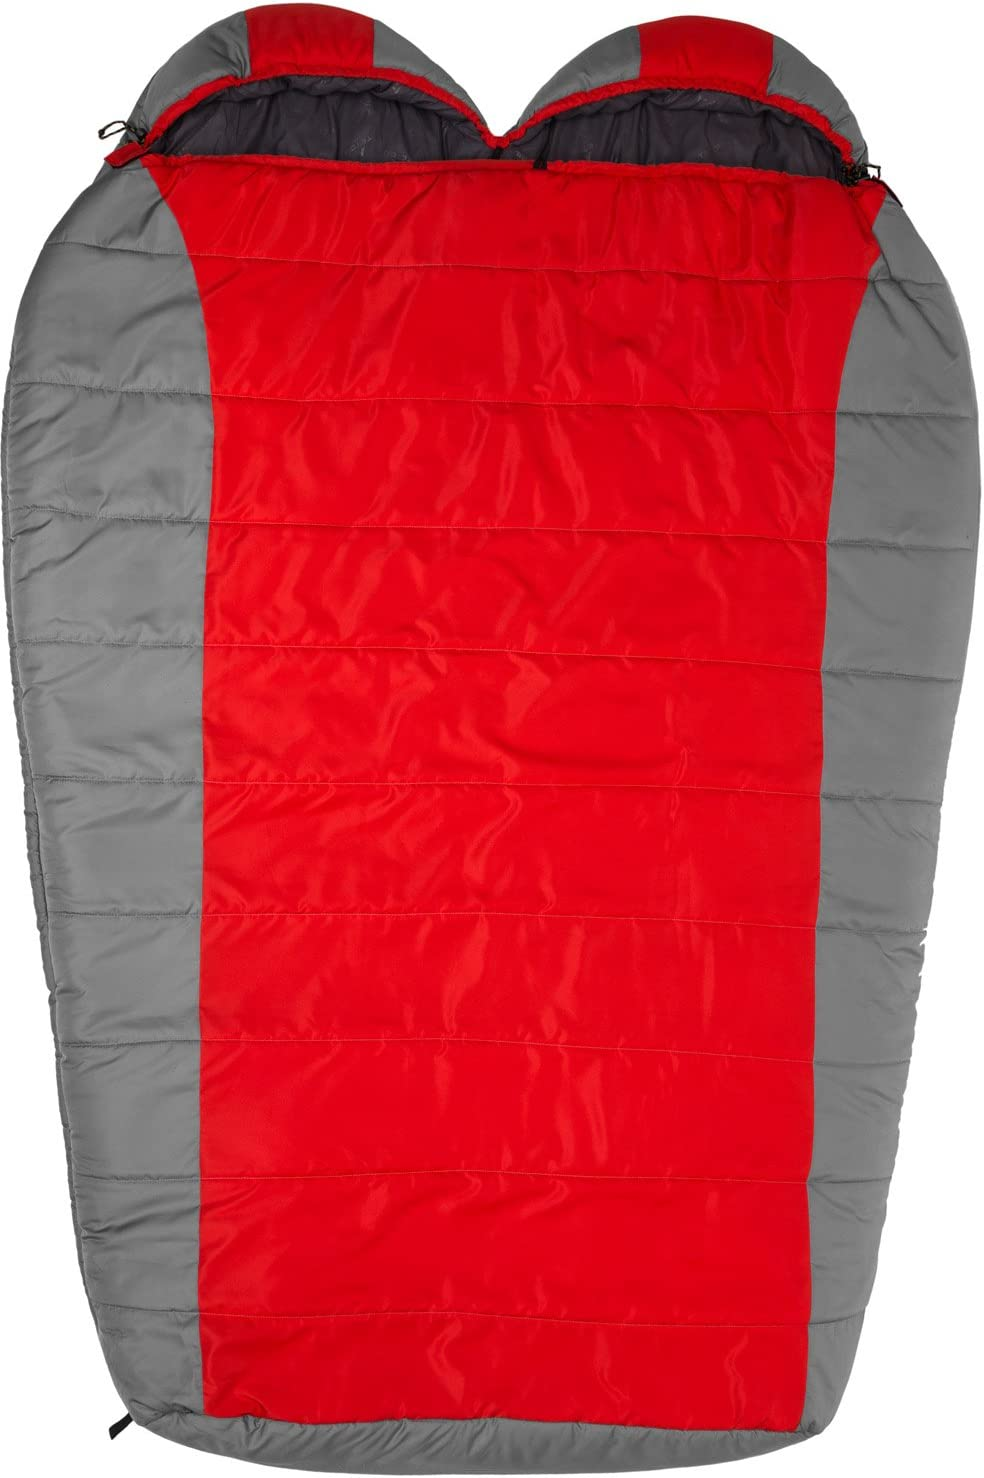 TETON Sports Tracker Plus5F Double Wide Sleeping Bag